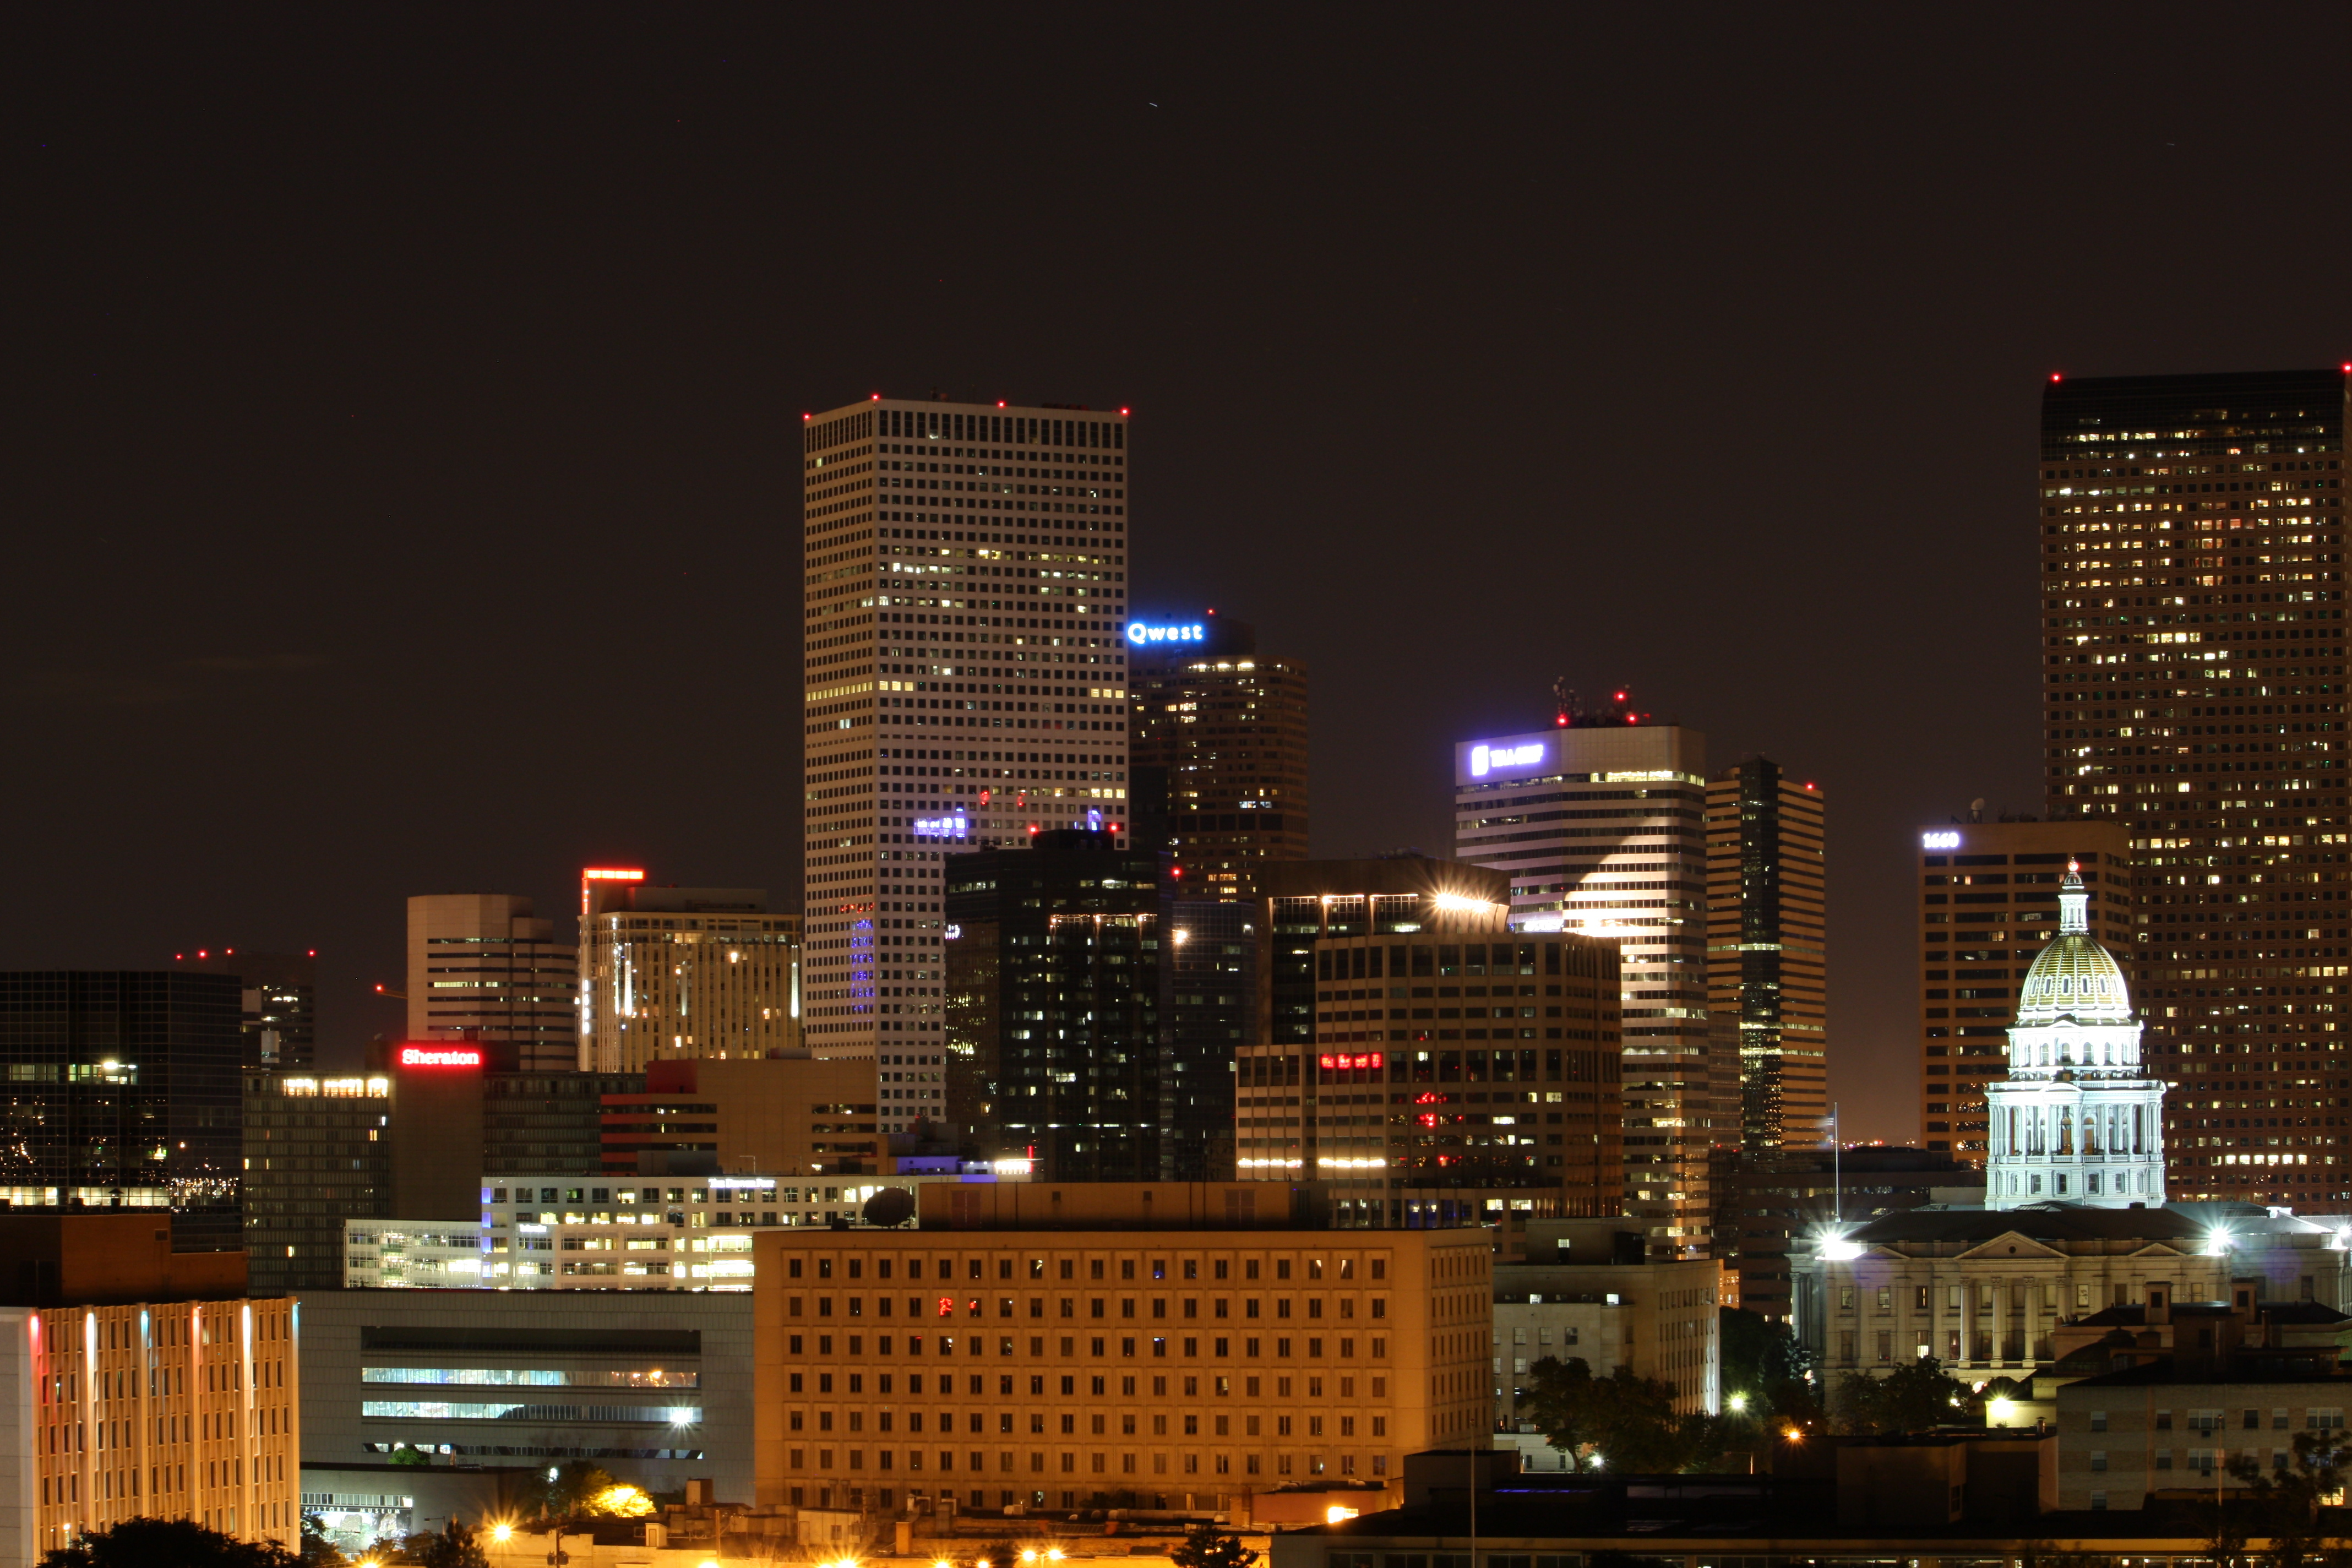 Downtown Denver would not be able withstand accommodating much more car traffic.